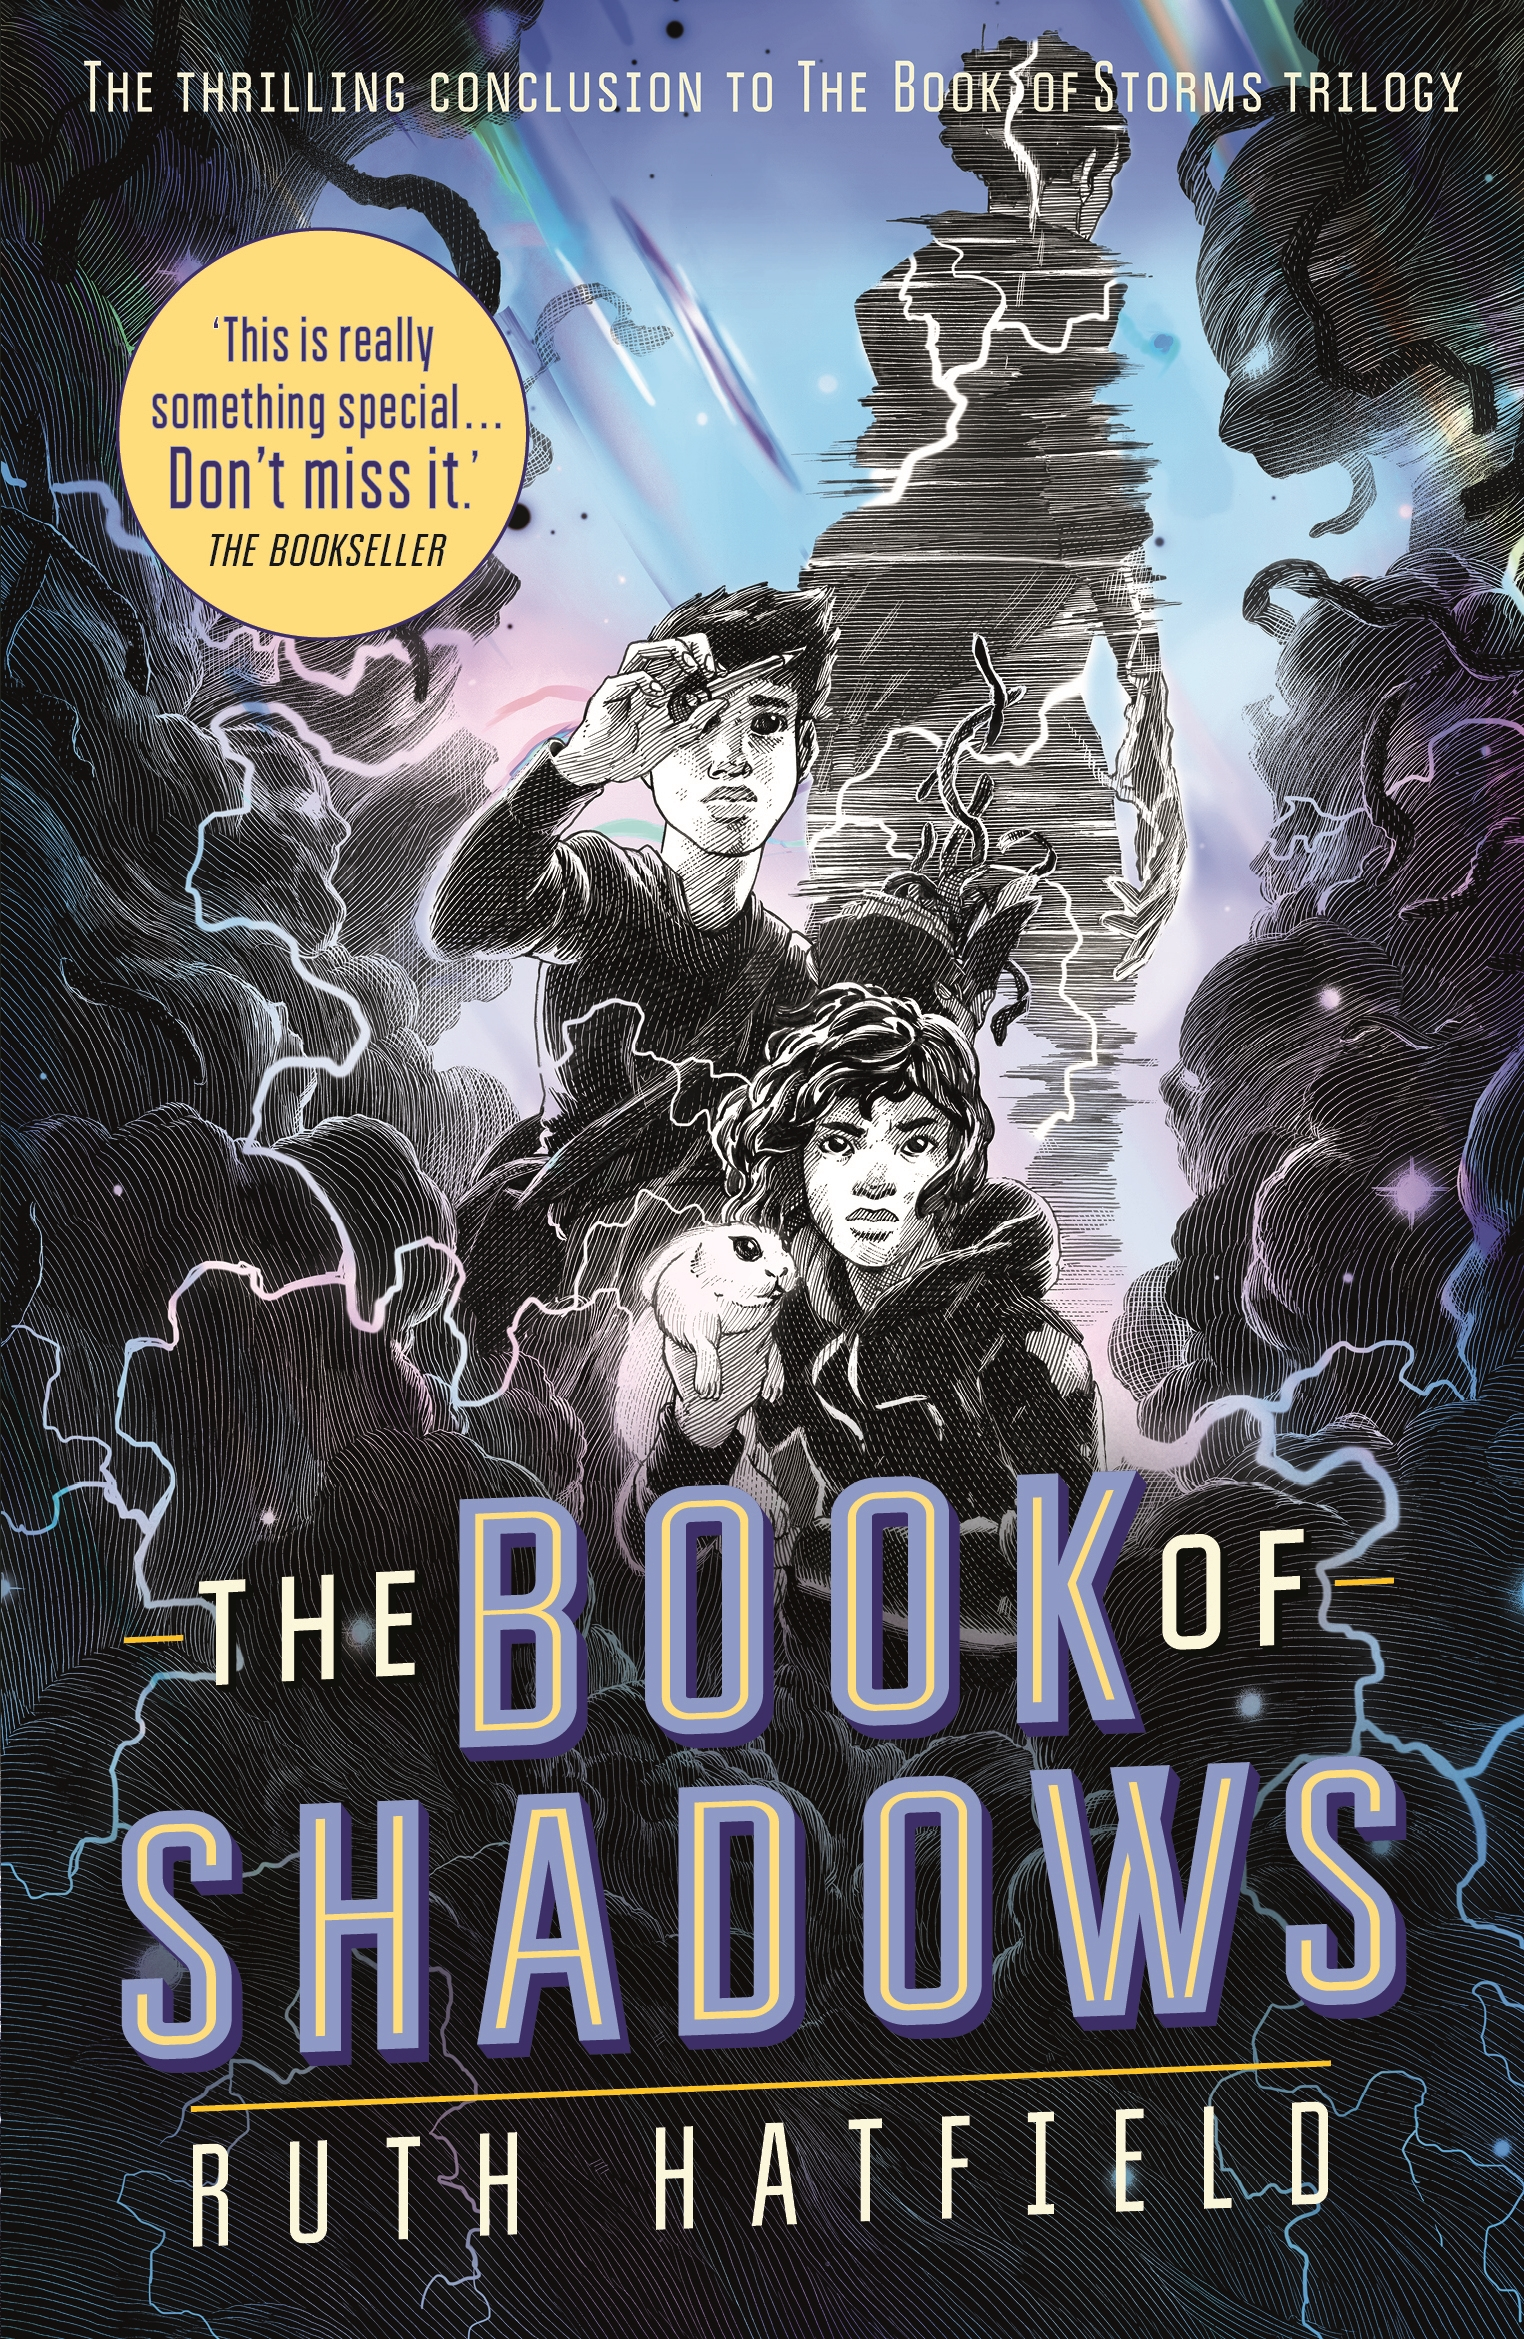 The Book of Shadows by Ruth Hatfield